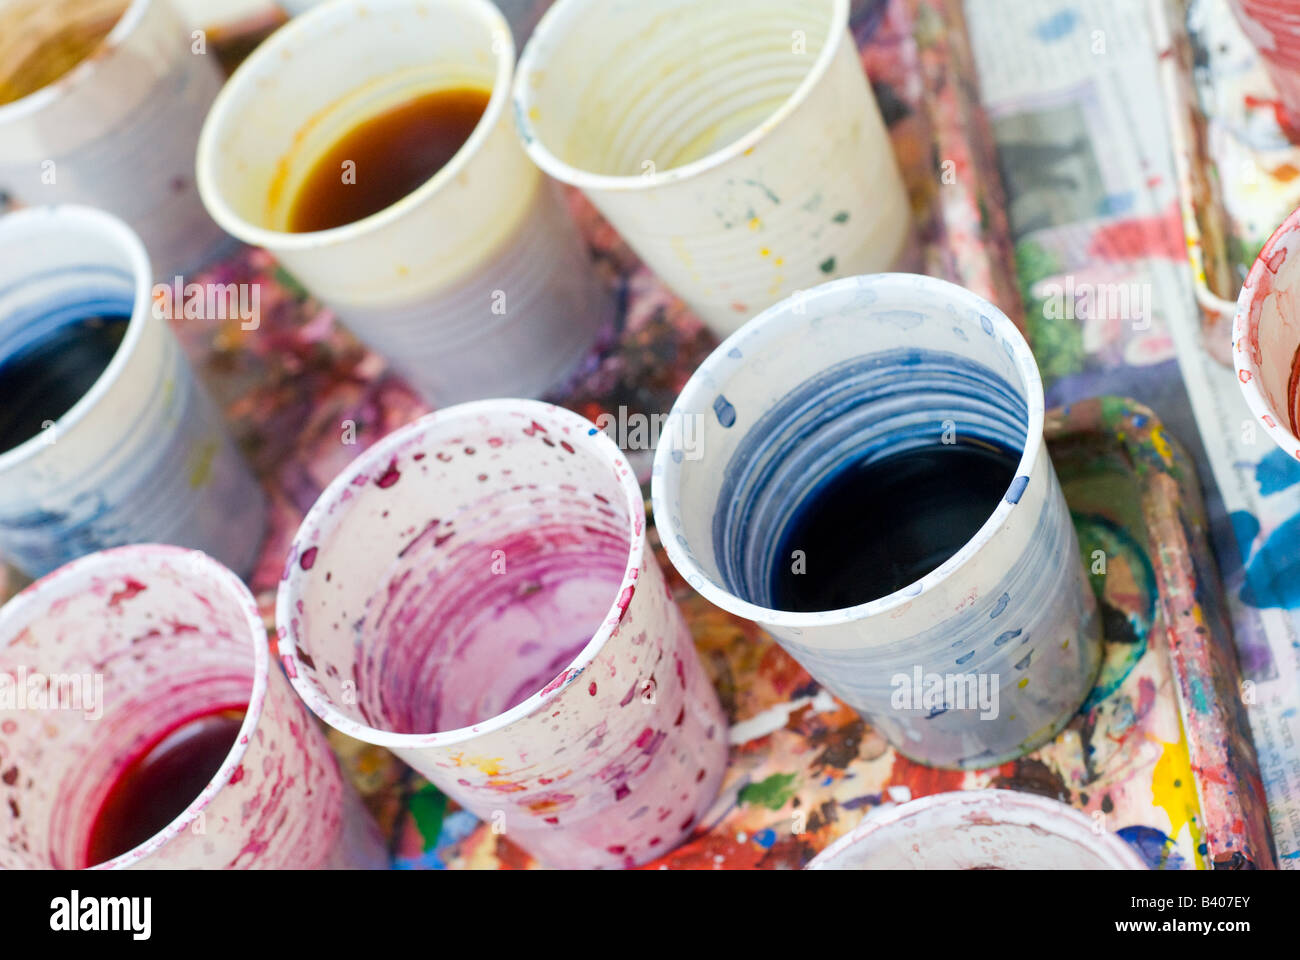 How to clean paintbrushes - Stock Photo Dirty Water In Plastic Cups Used To Clean Paint Brushes During An Art Lesson In A Uk School